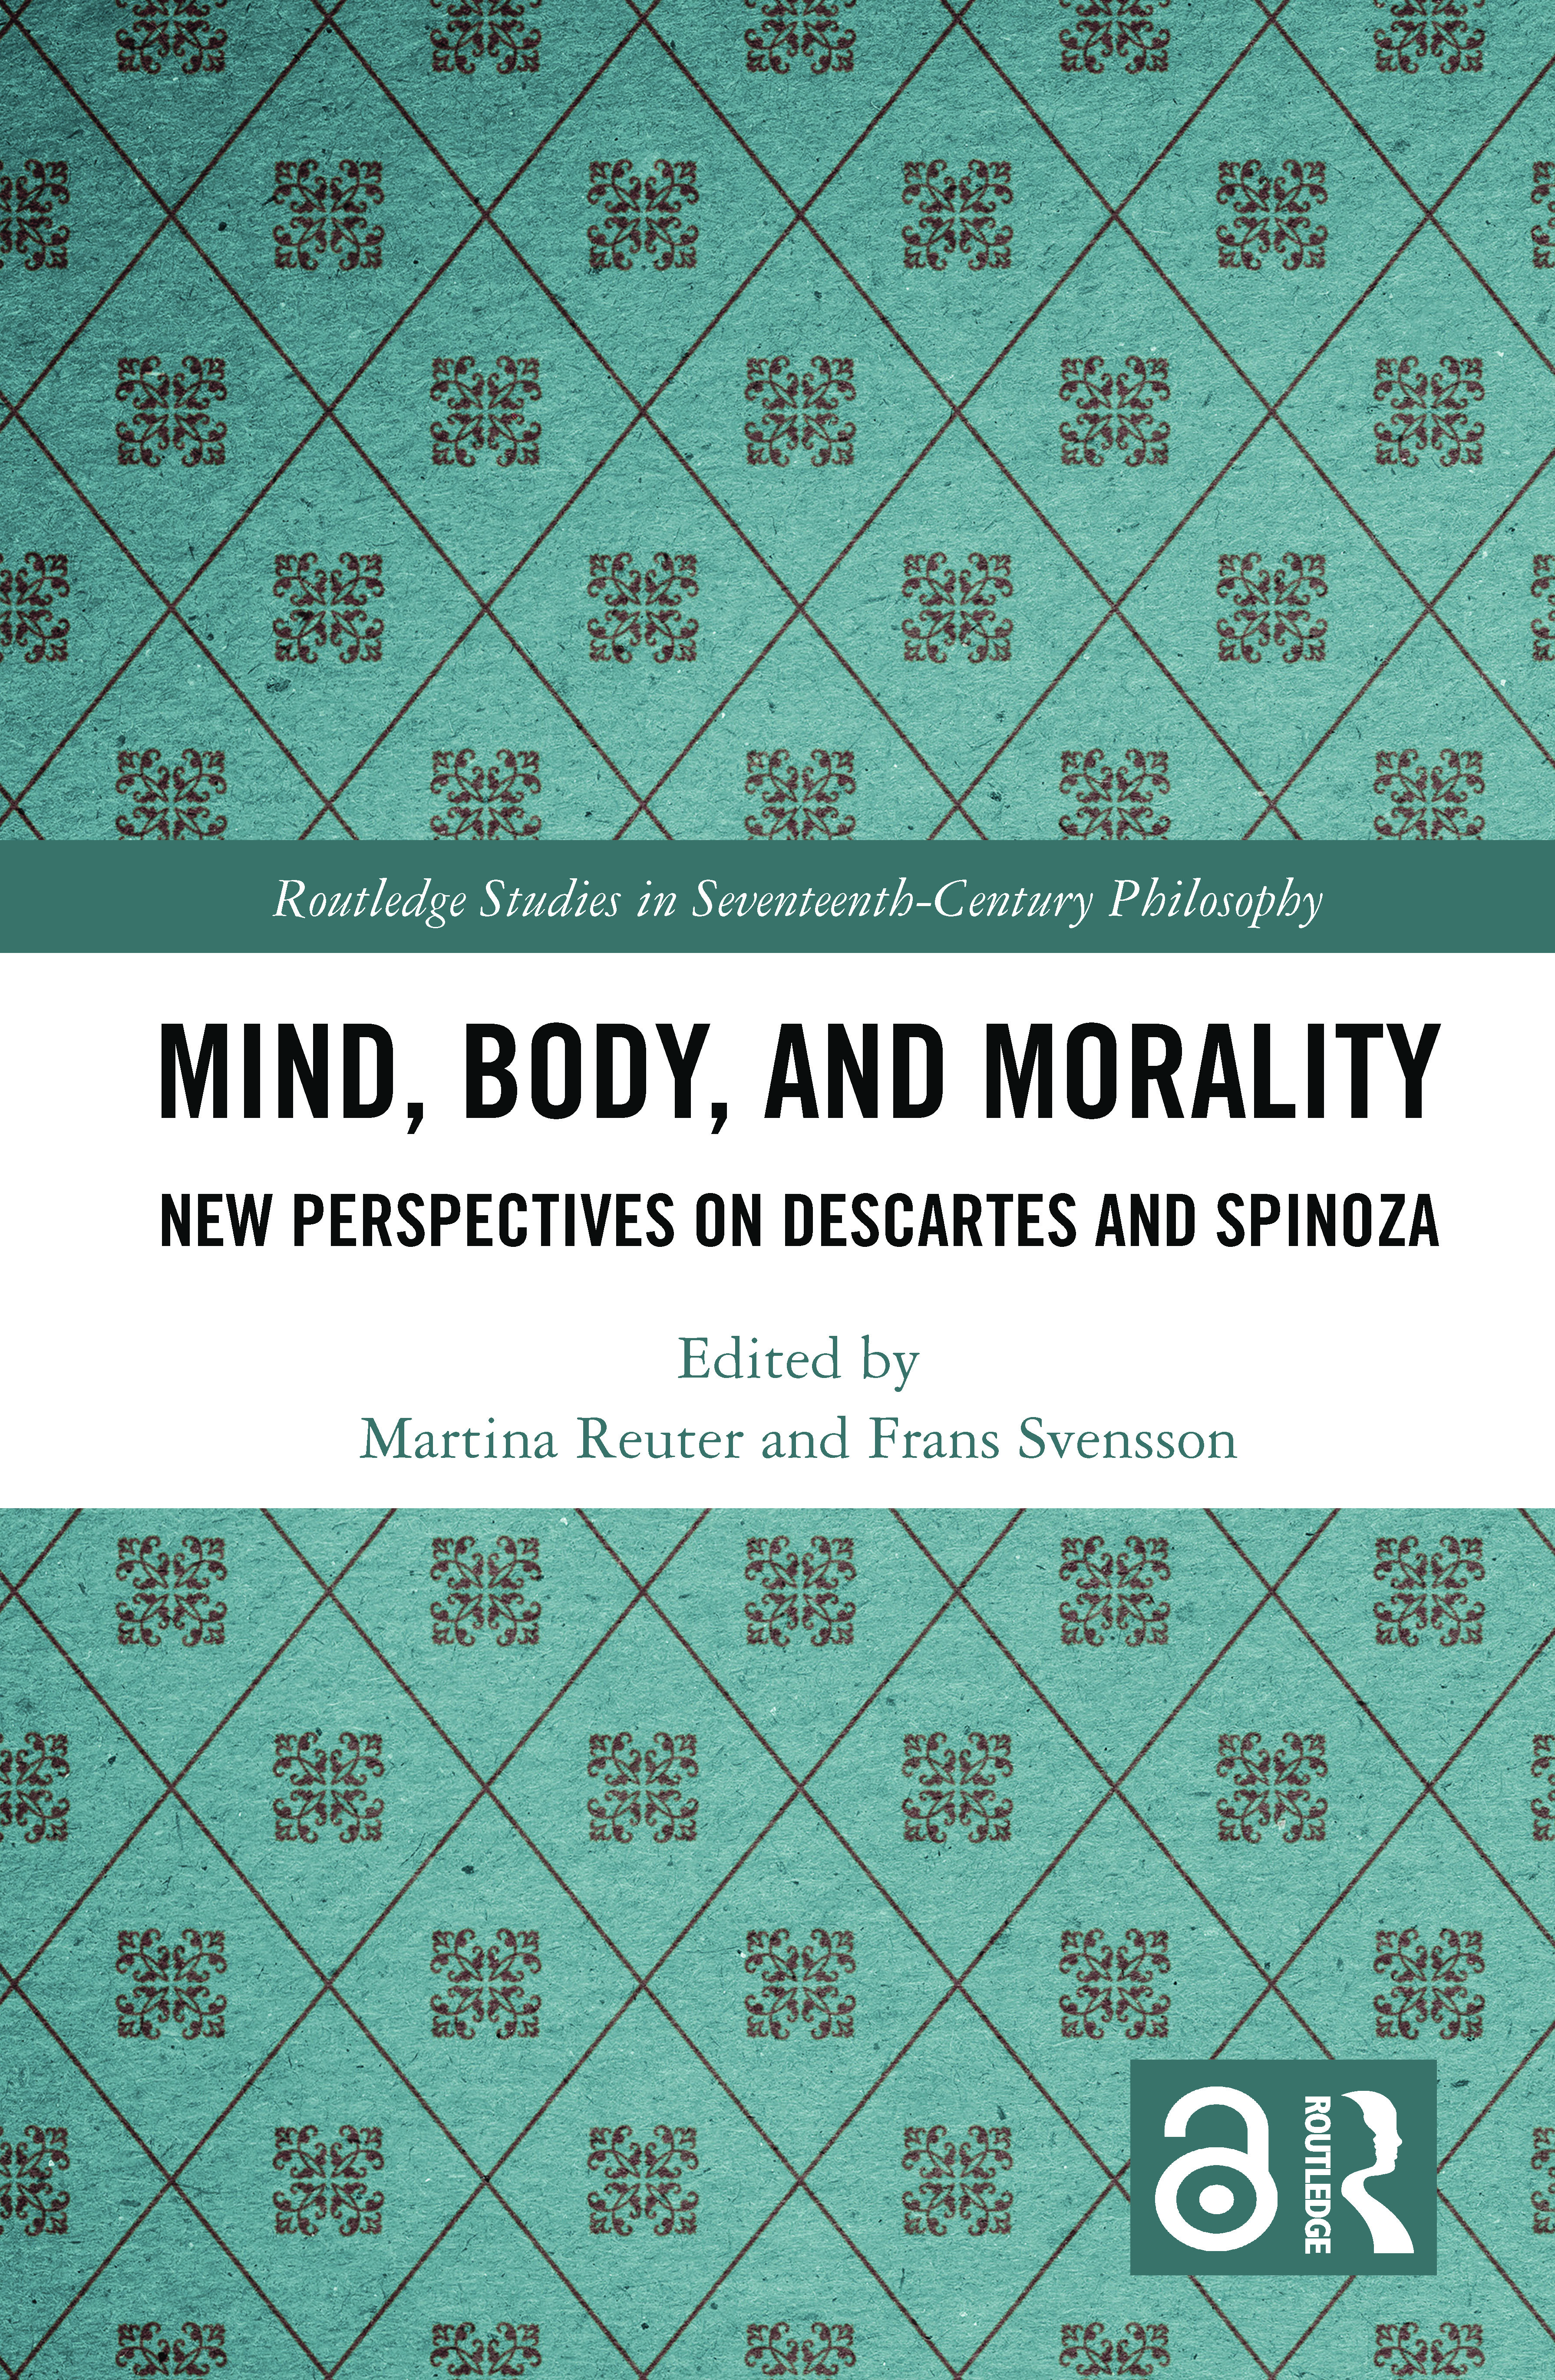 Mind, Body, and Morality: New Perspectives on Descartes and Spinoza book cover